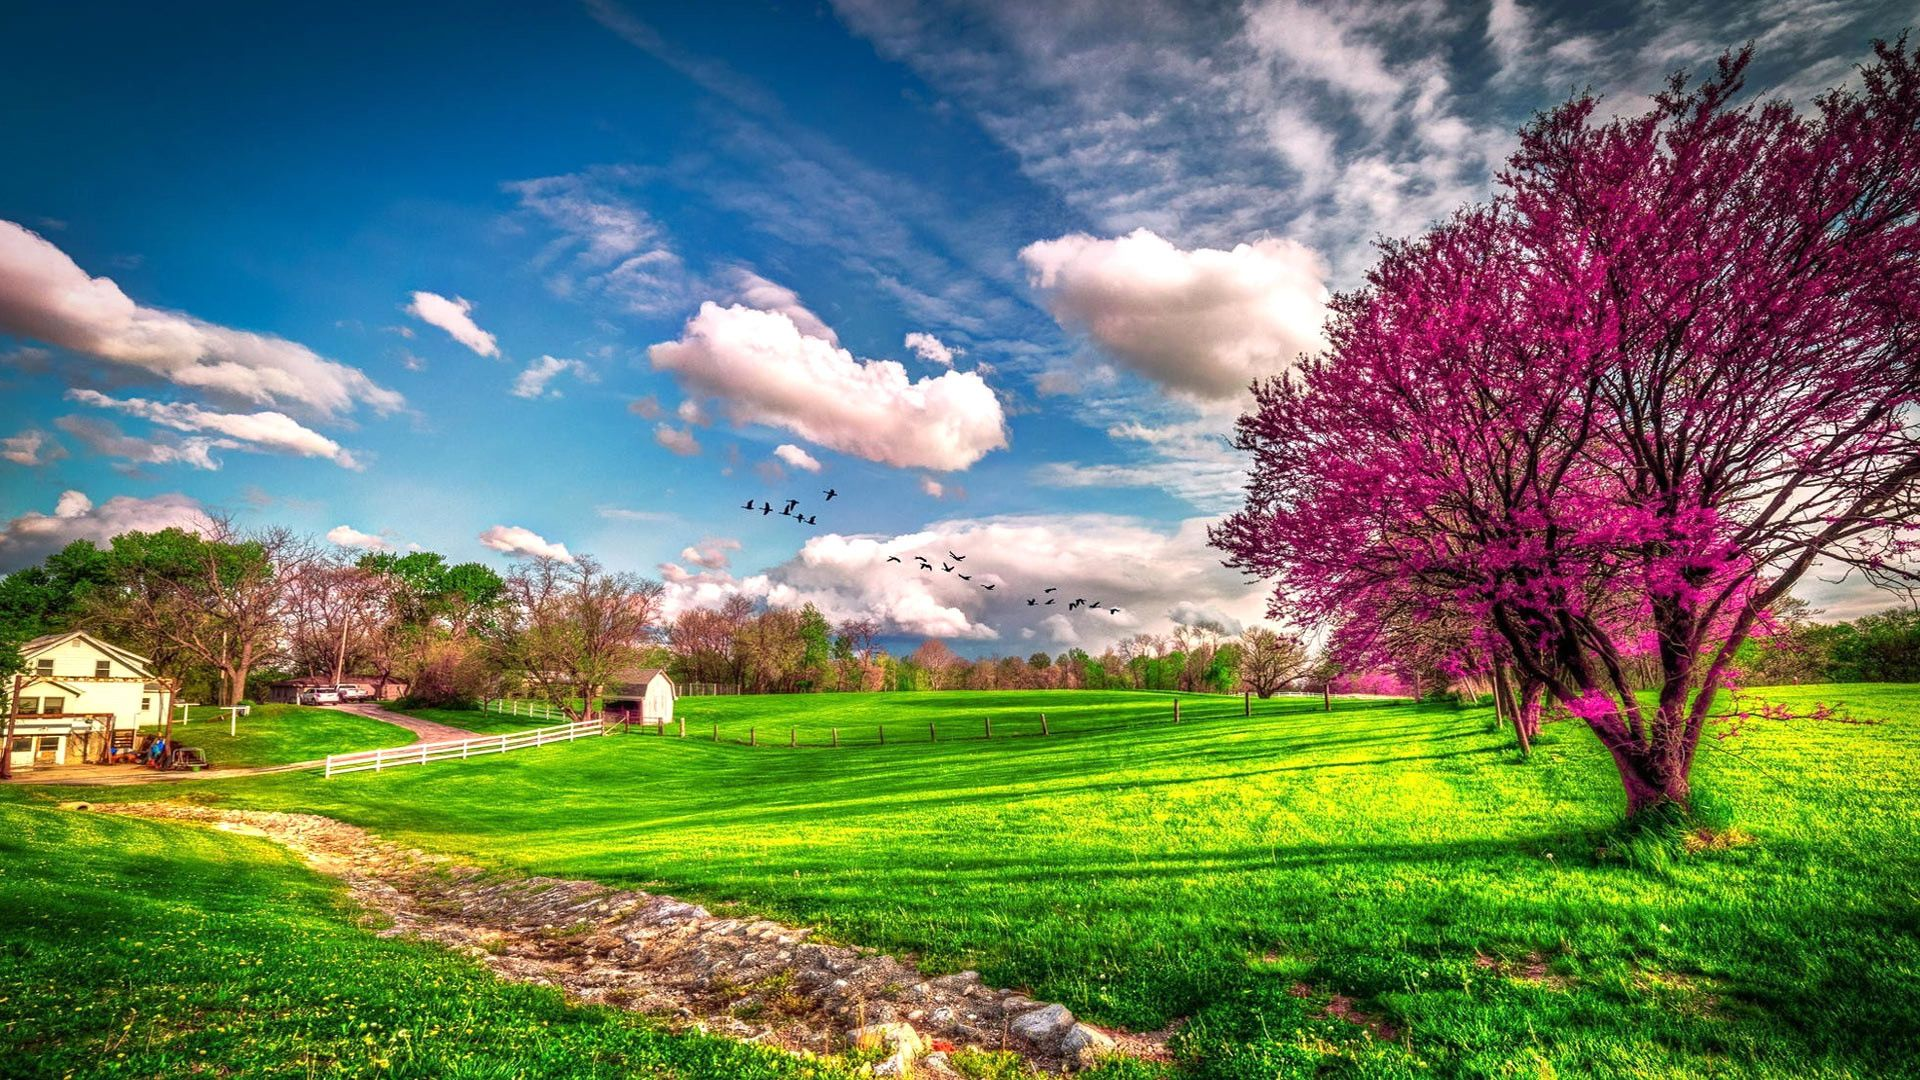 Wallpaper Download 1920x1080 Landscape Beautiful Spring Nature Spring Wallpapers Seasons Wallpapers Do Scenery Wallpaper Spring Wallpaper Spring Landscape